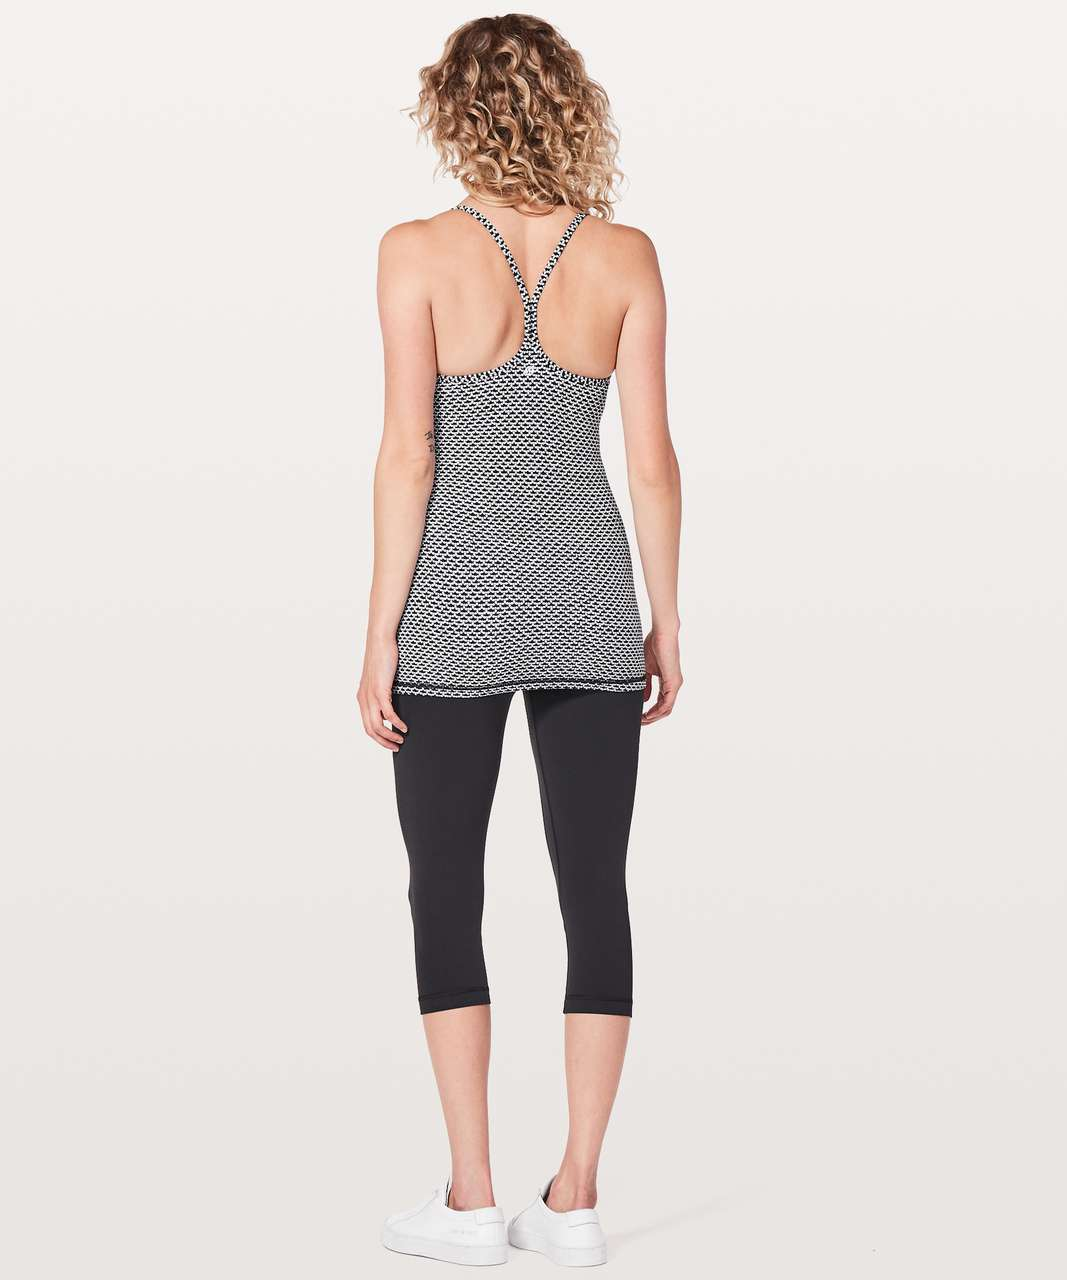 Lululemon Power Y Tank *Luon - Monochromic Black